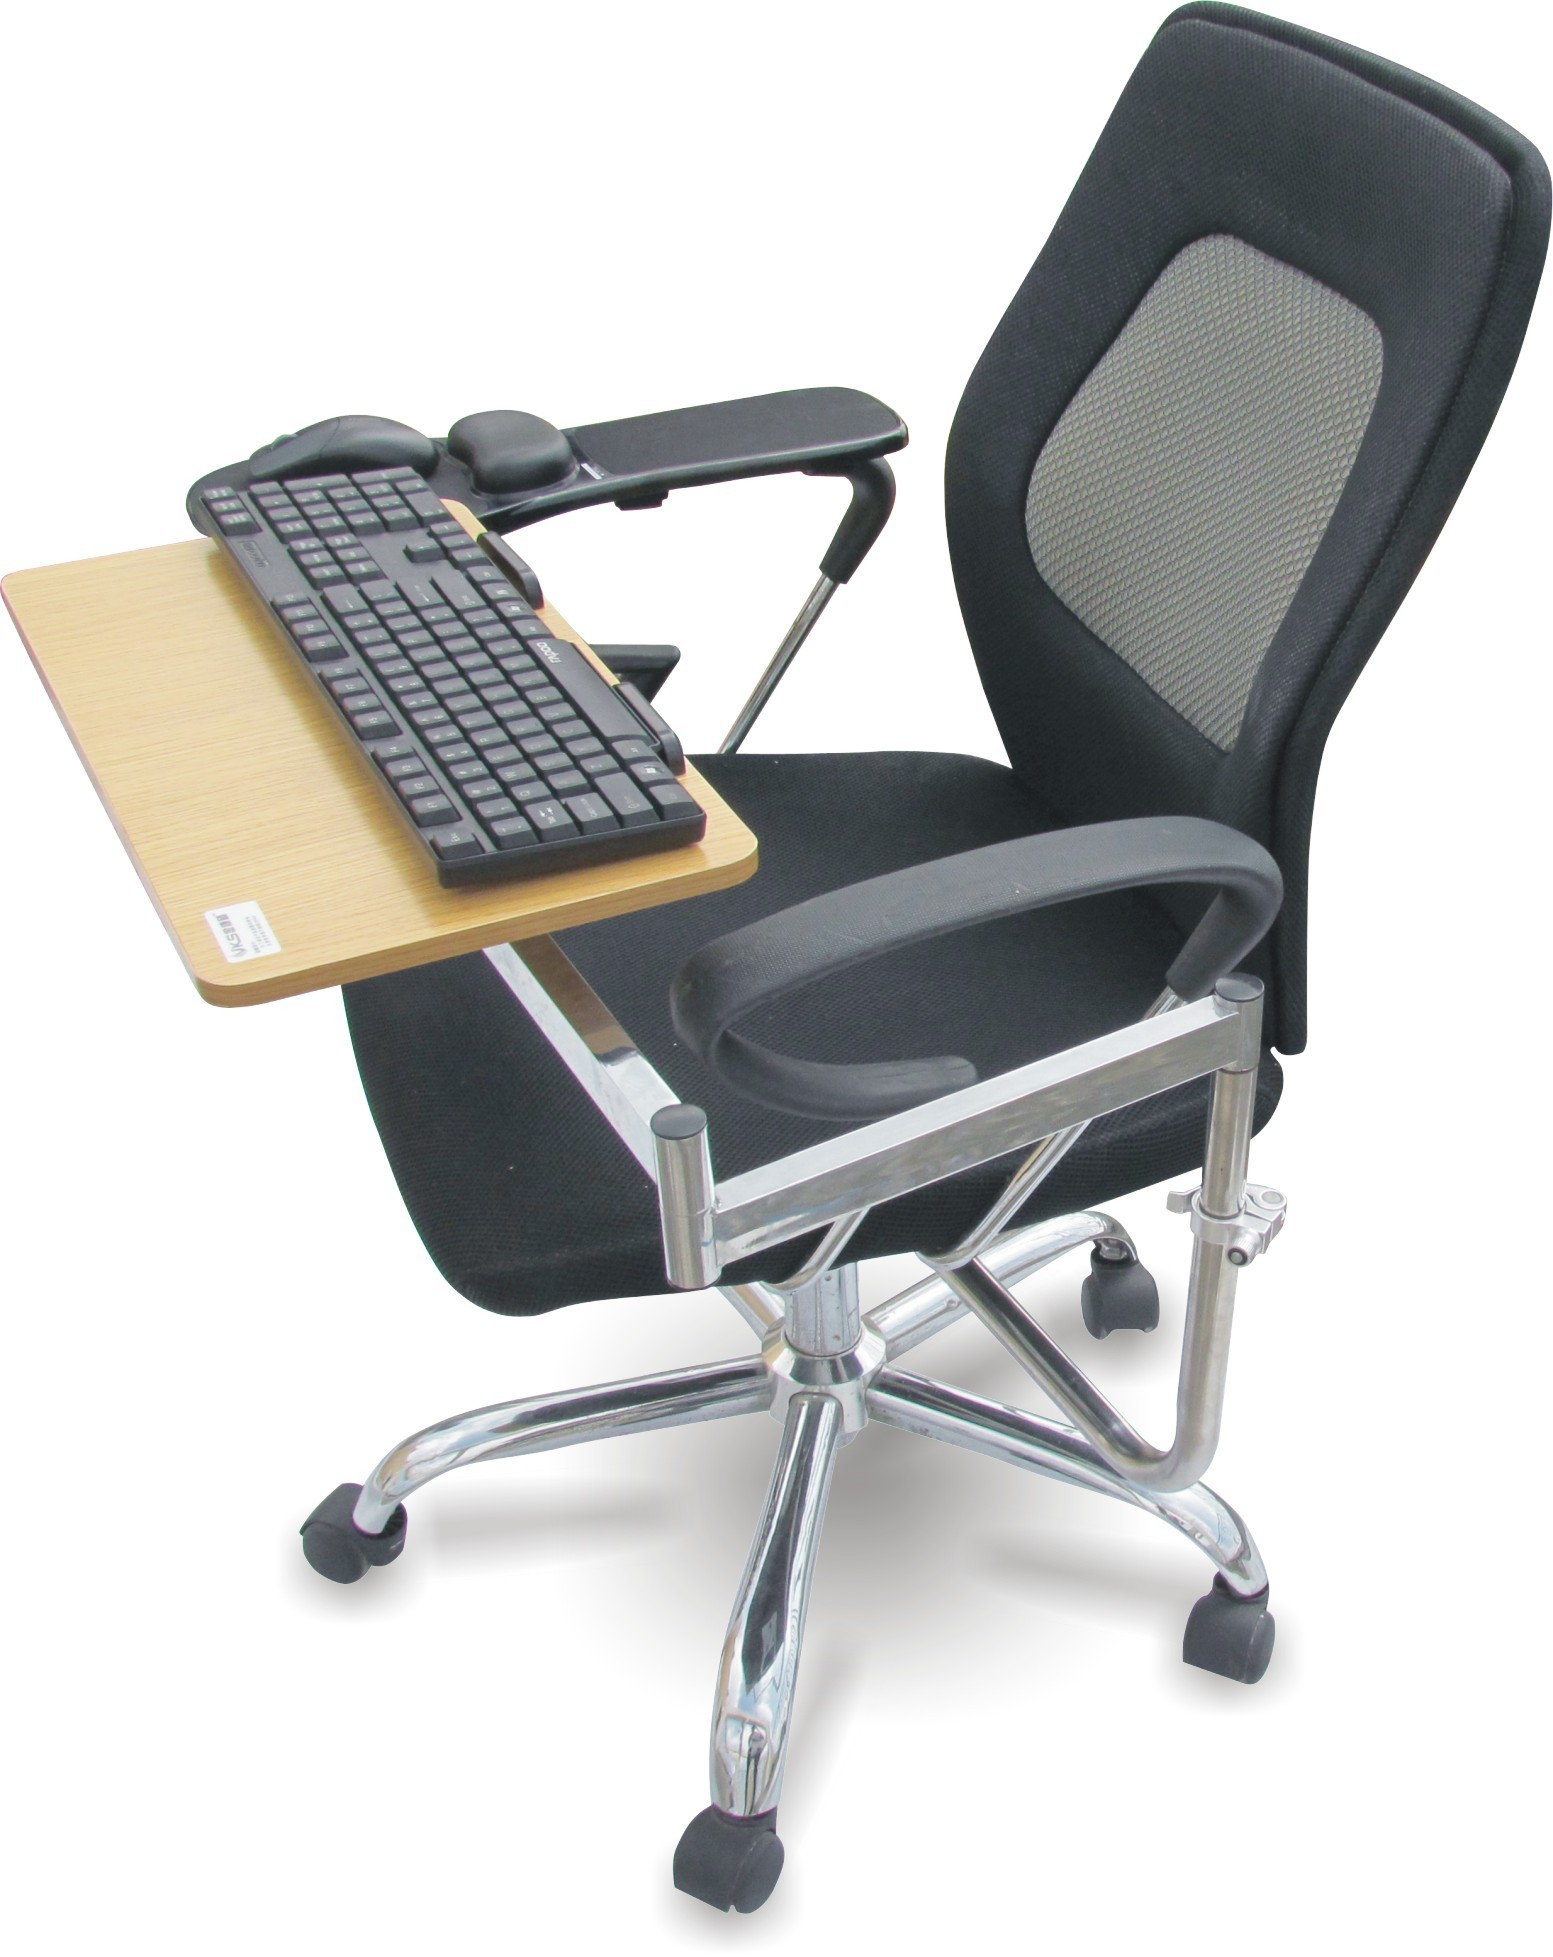 Laptop Chair Keyboard Tray Keyboard Mount Laptop Mount Corniculatum